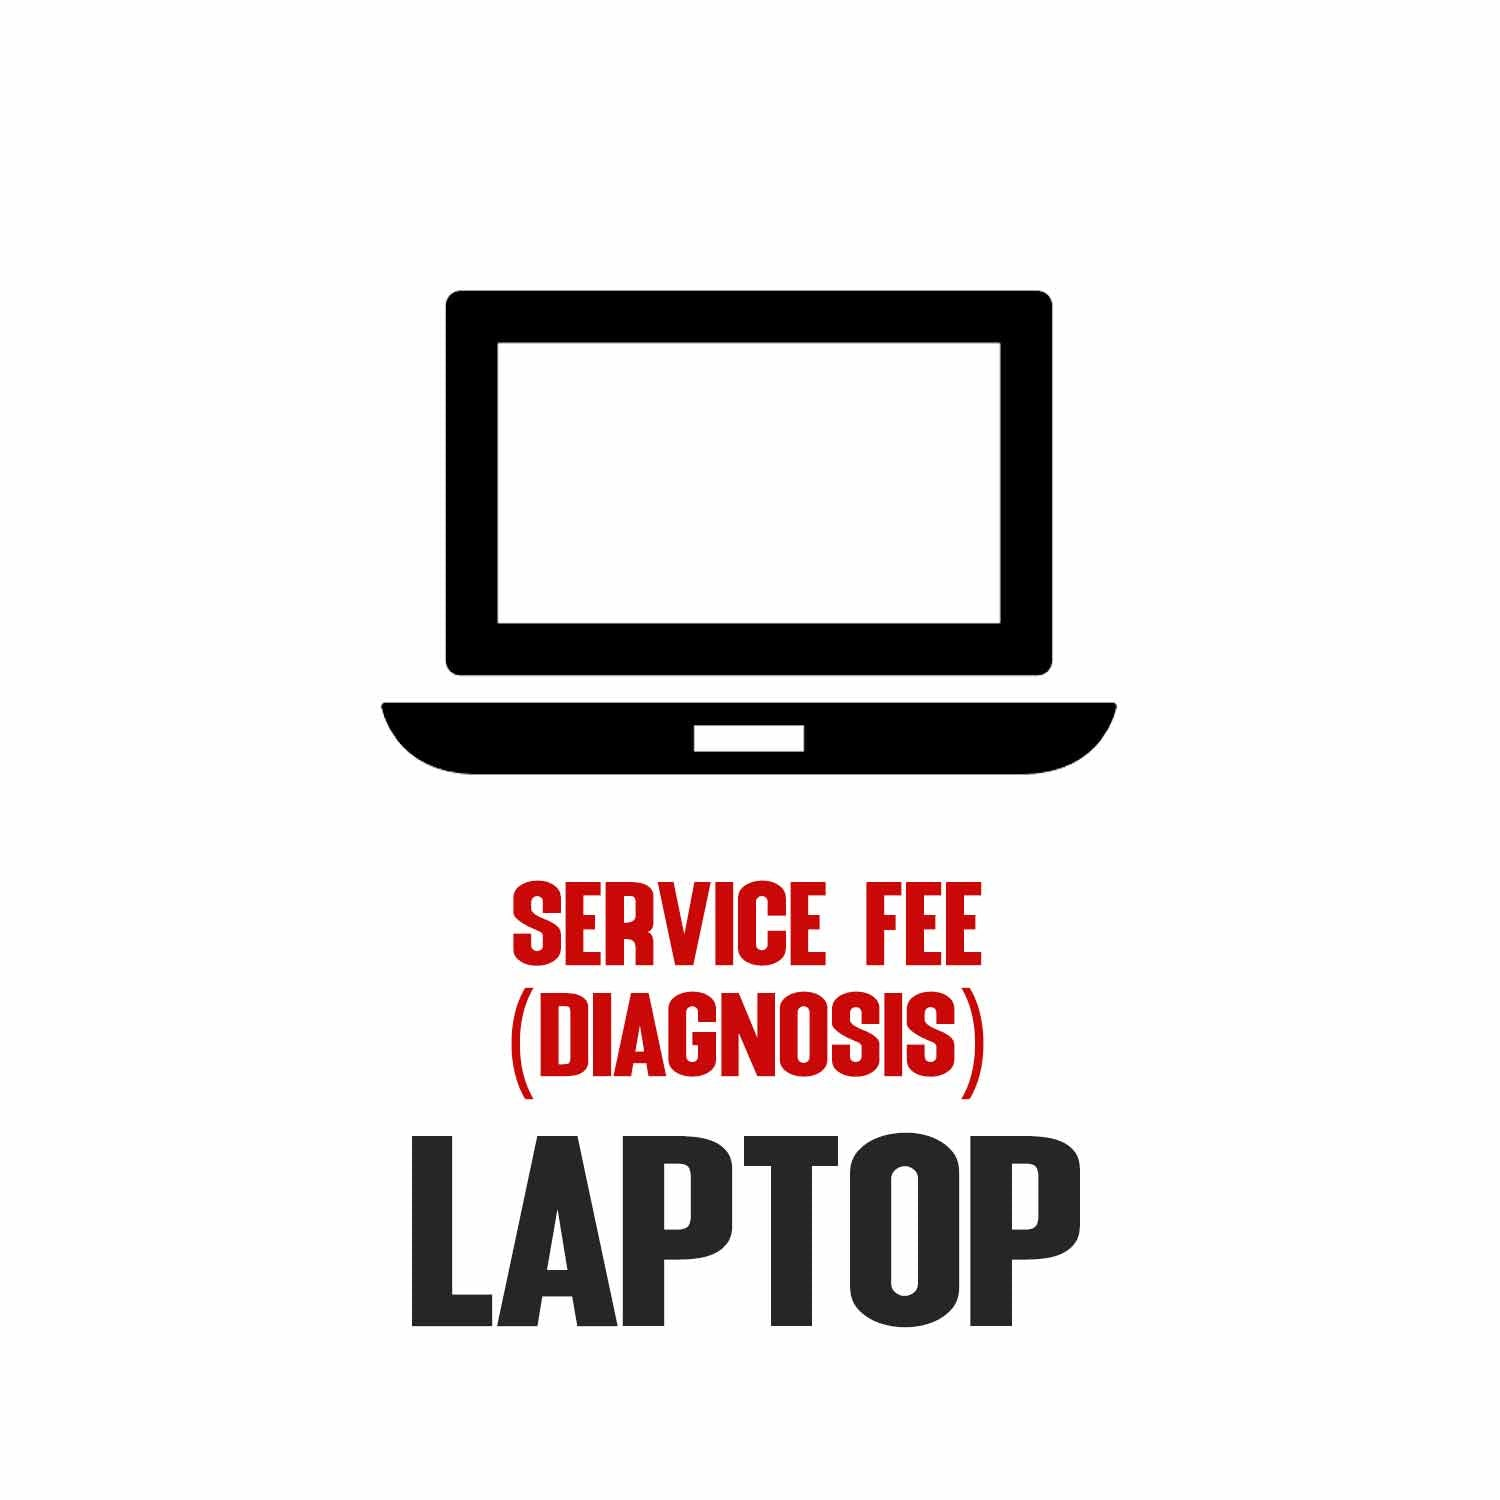 Service fee (diagnosis) - Laptop